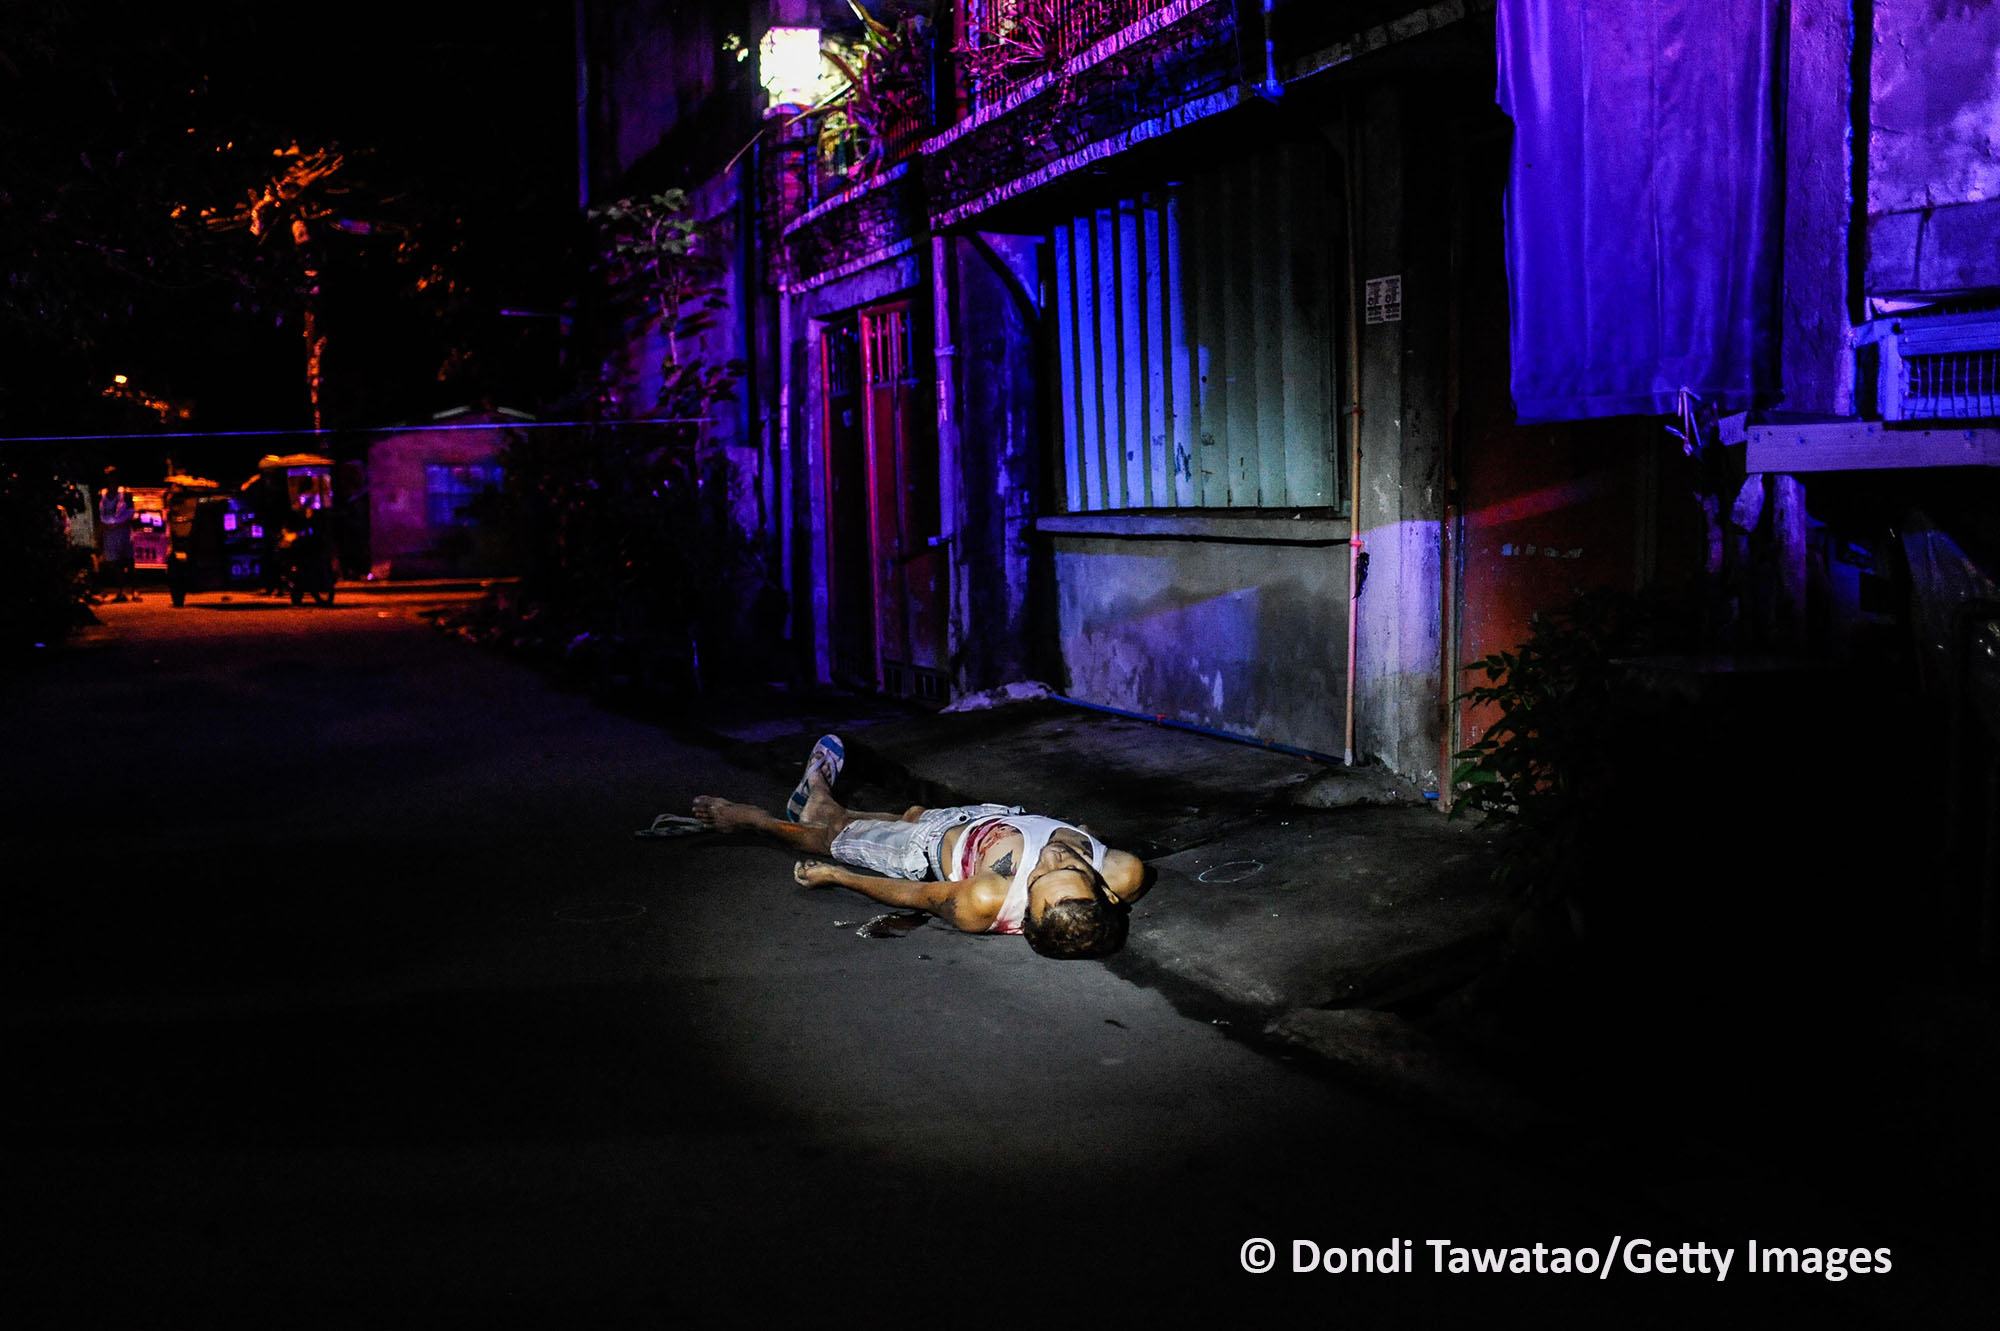 Merit, Photography Feature, 21st Human Rights Press Awards. Photo by Dondi Tawatao/Getty Images